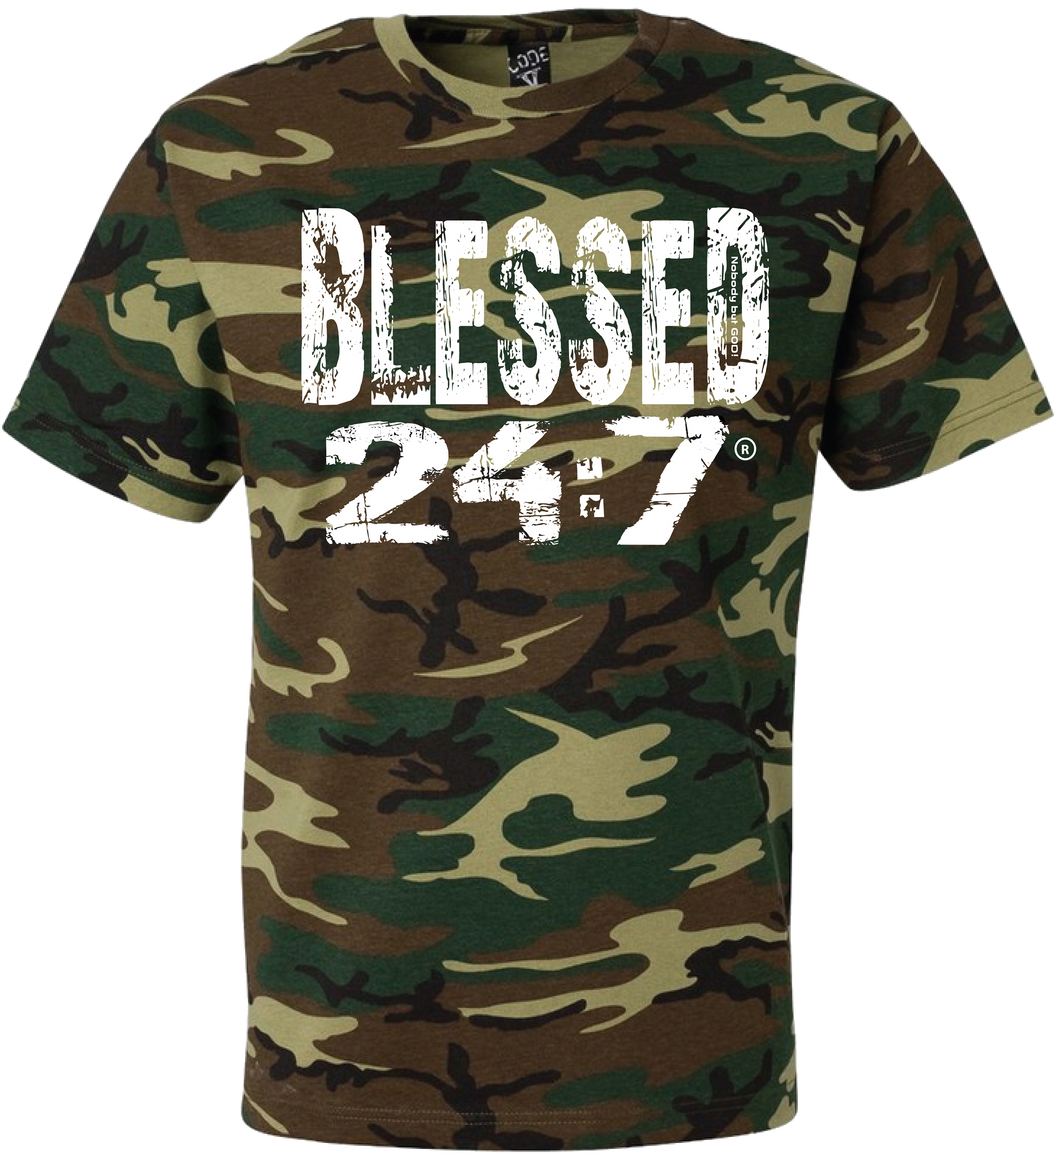 Blessed 24:7 (Camouflage) Unisex T-shirts